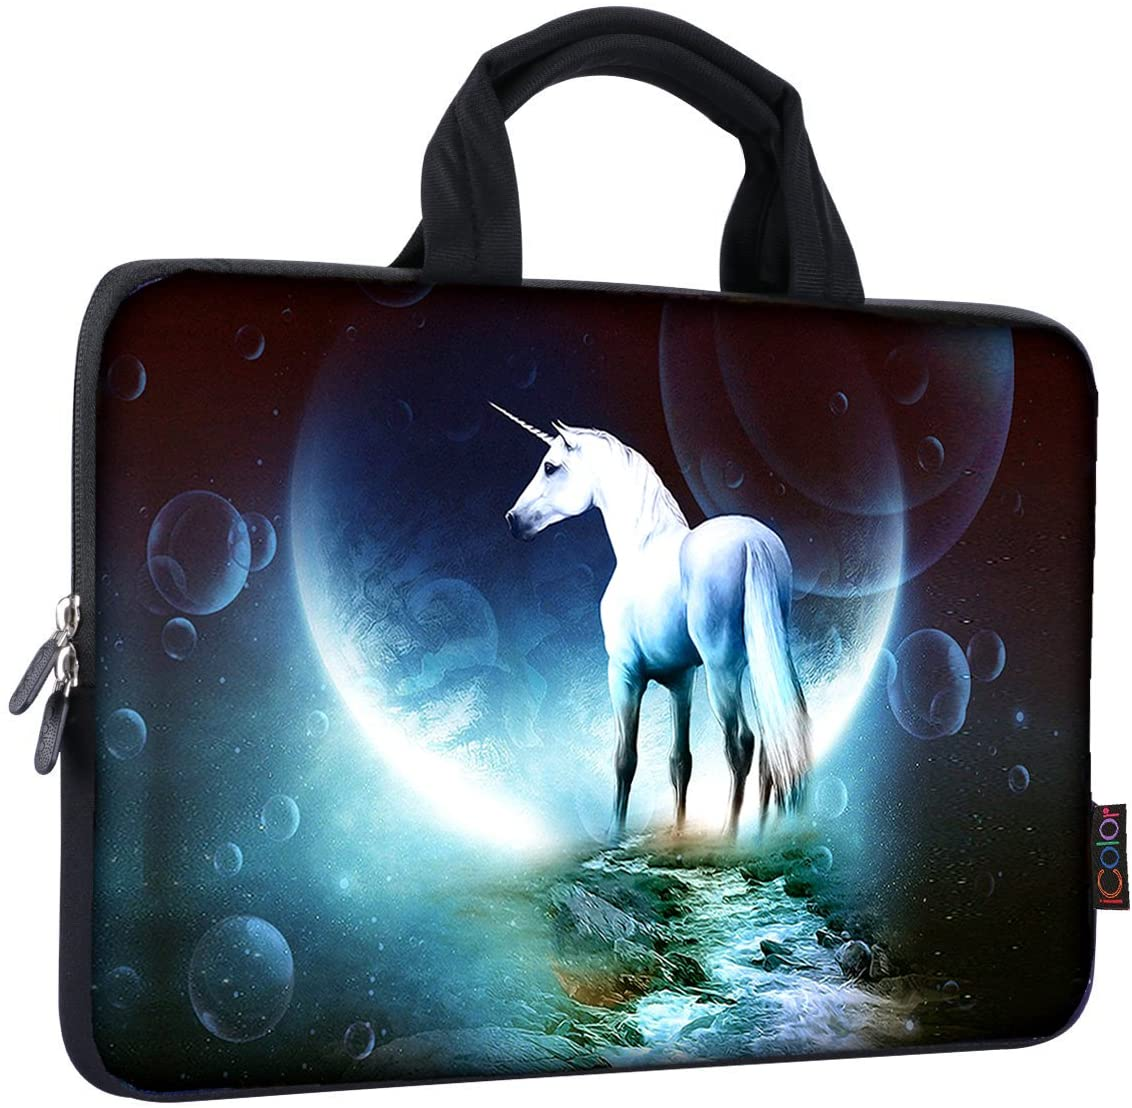 iColor 14 15 15.4 15.6 inch Laptop Handle Bag Computer Protect Case Pouch Holder Notebook Sleeve Neoprene Cover Soft Carring Travel Case for Dell Lenovo Toshiba HP Chromebook ASUS Acer Unicorn ICB-03